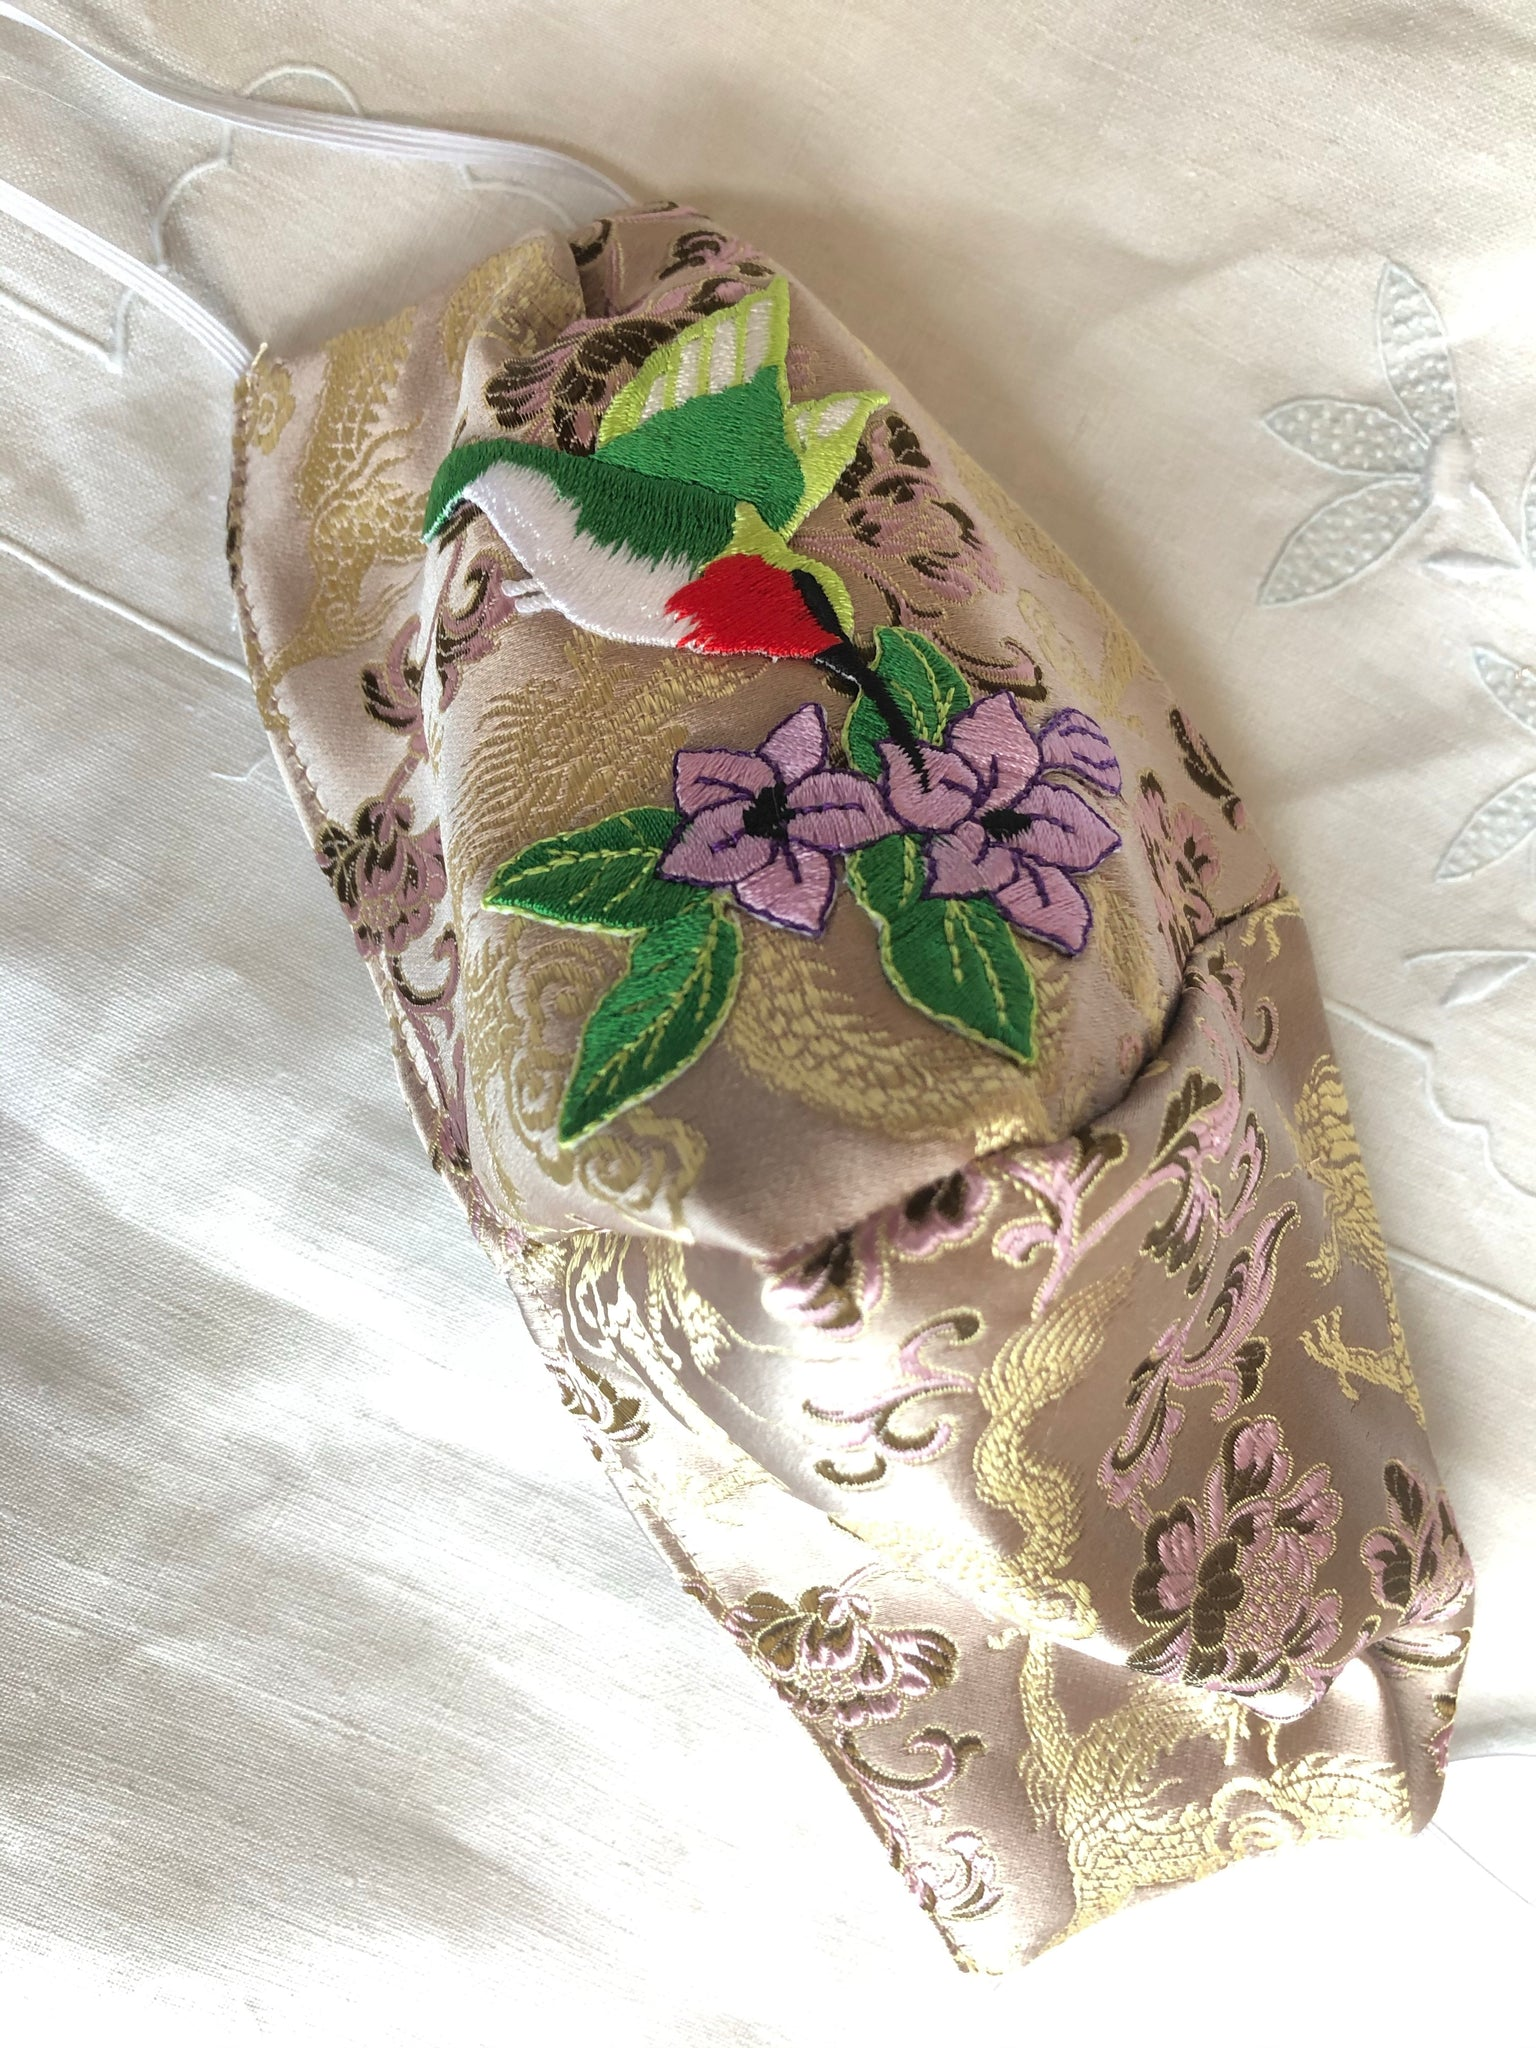 Beige silky hummingbird with purple flowers